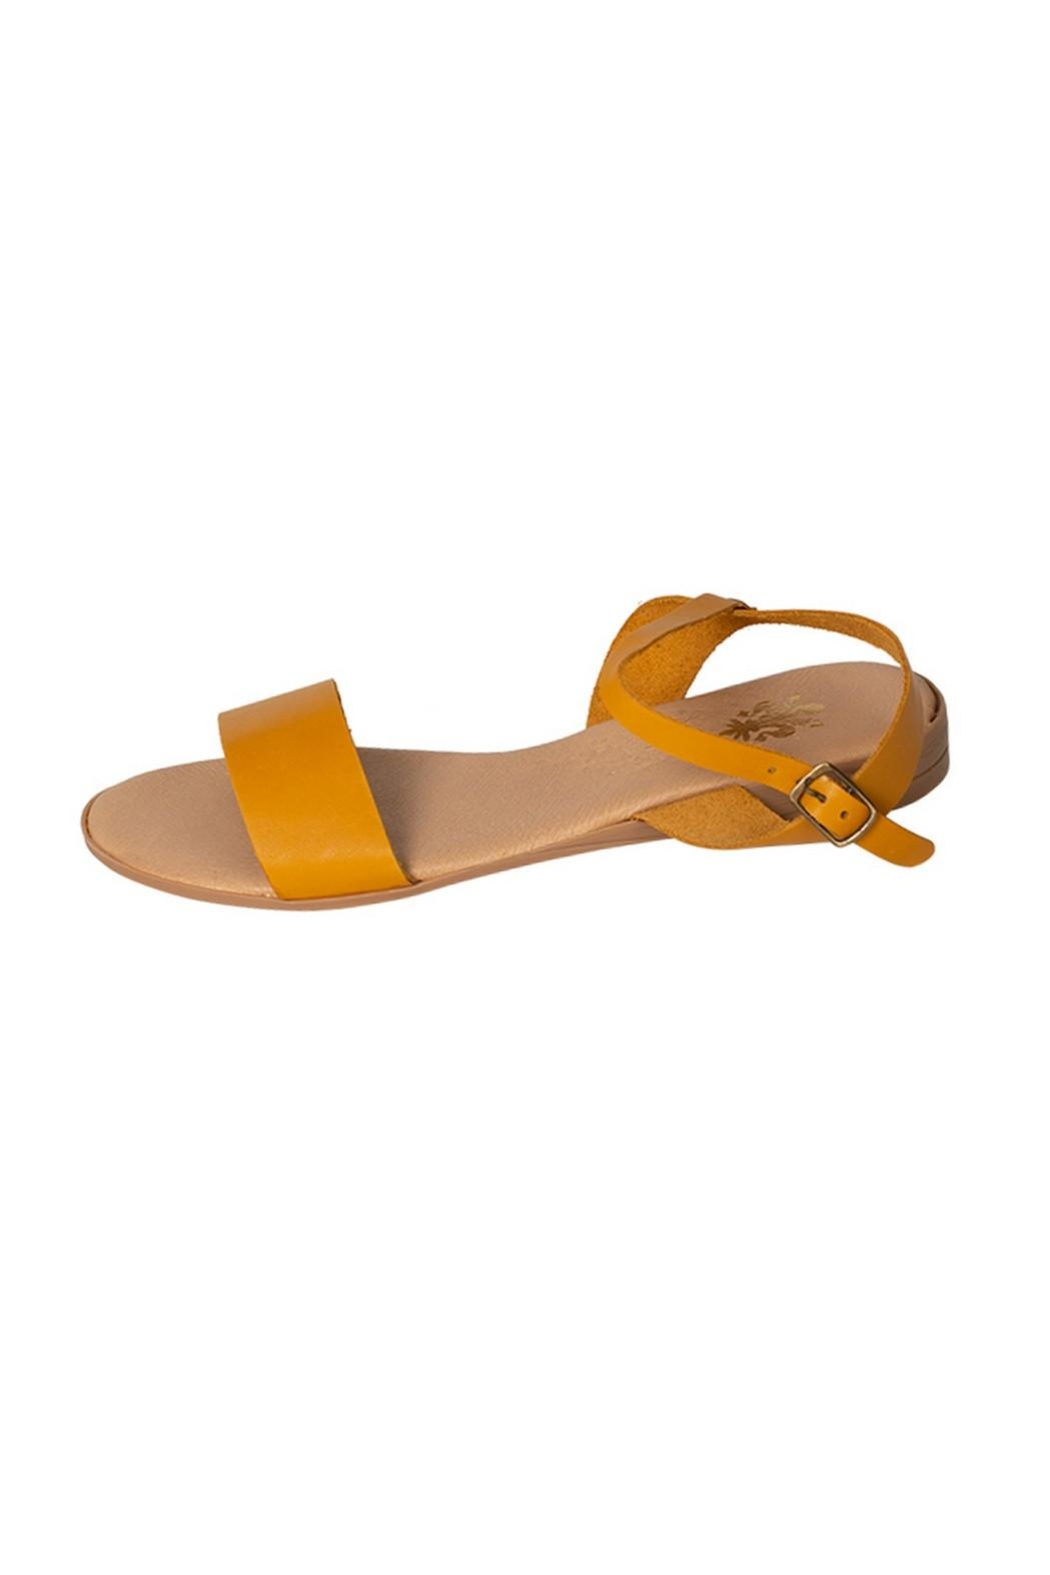 Firenze Mustard Leather Sandal - Main Image